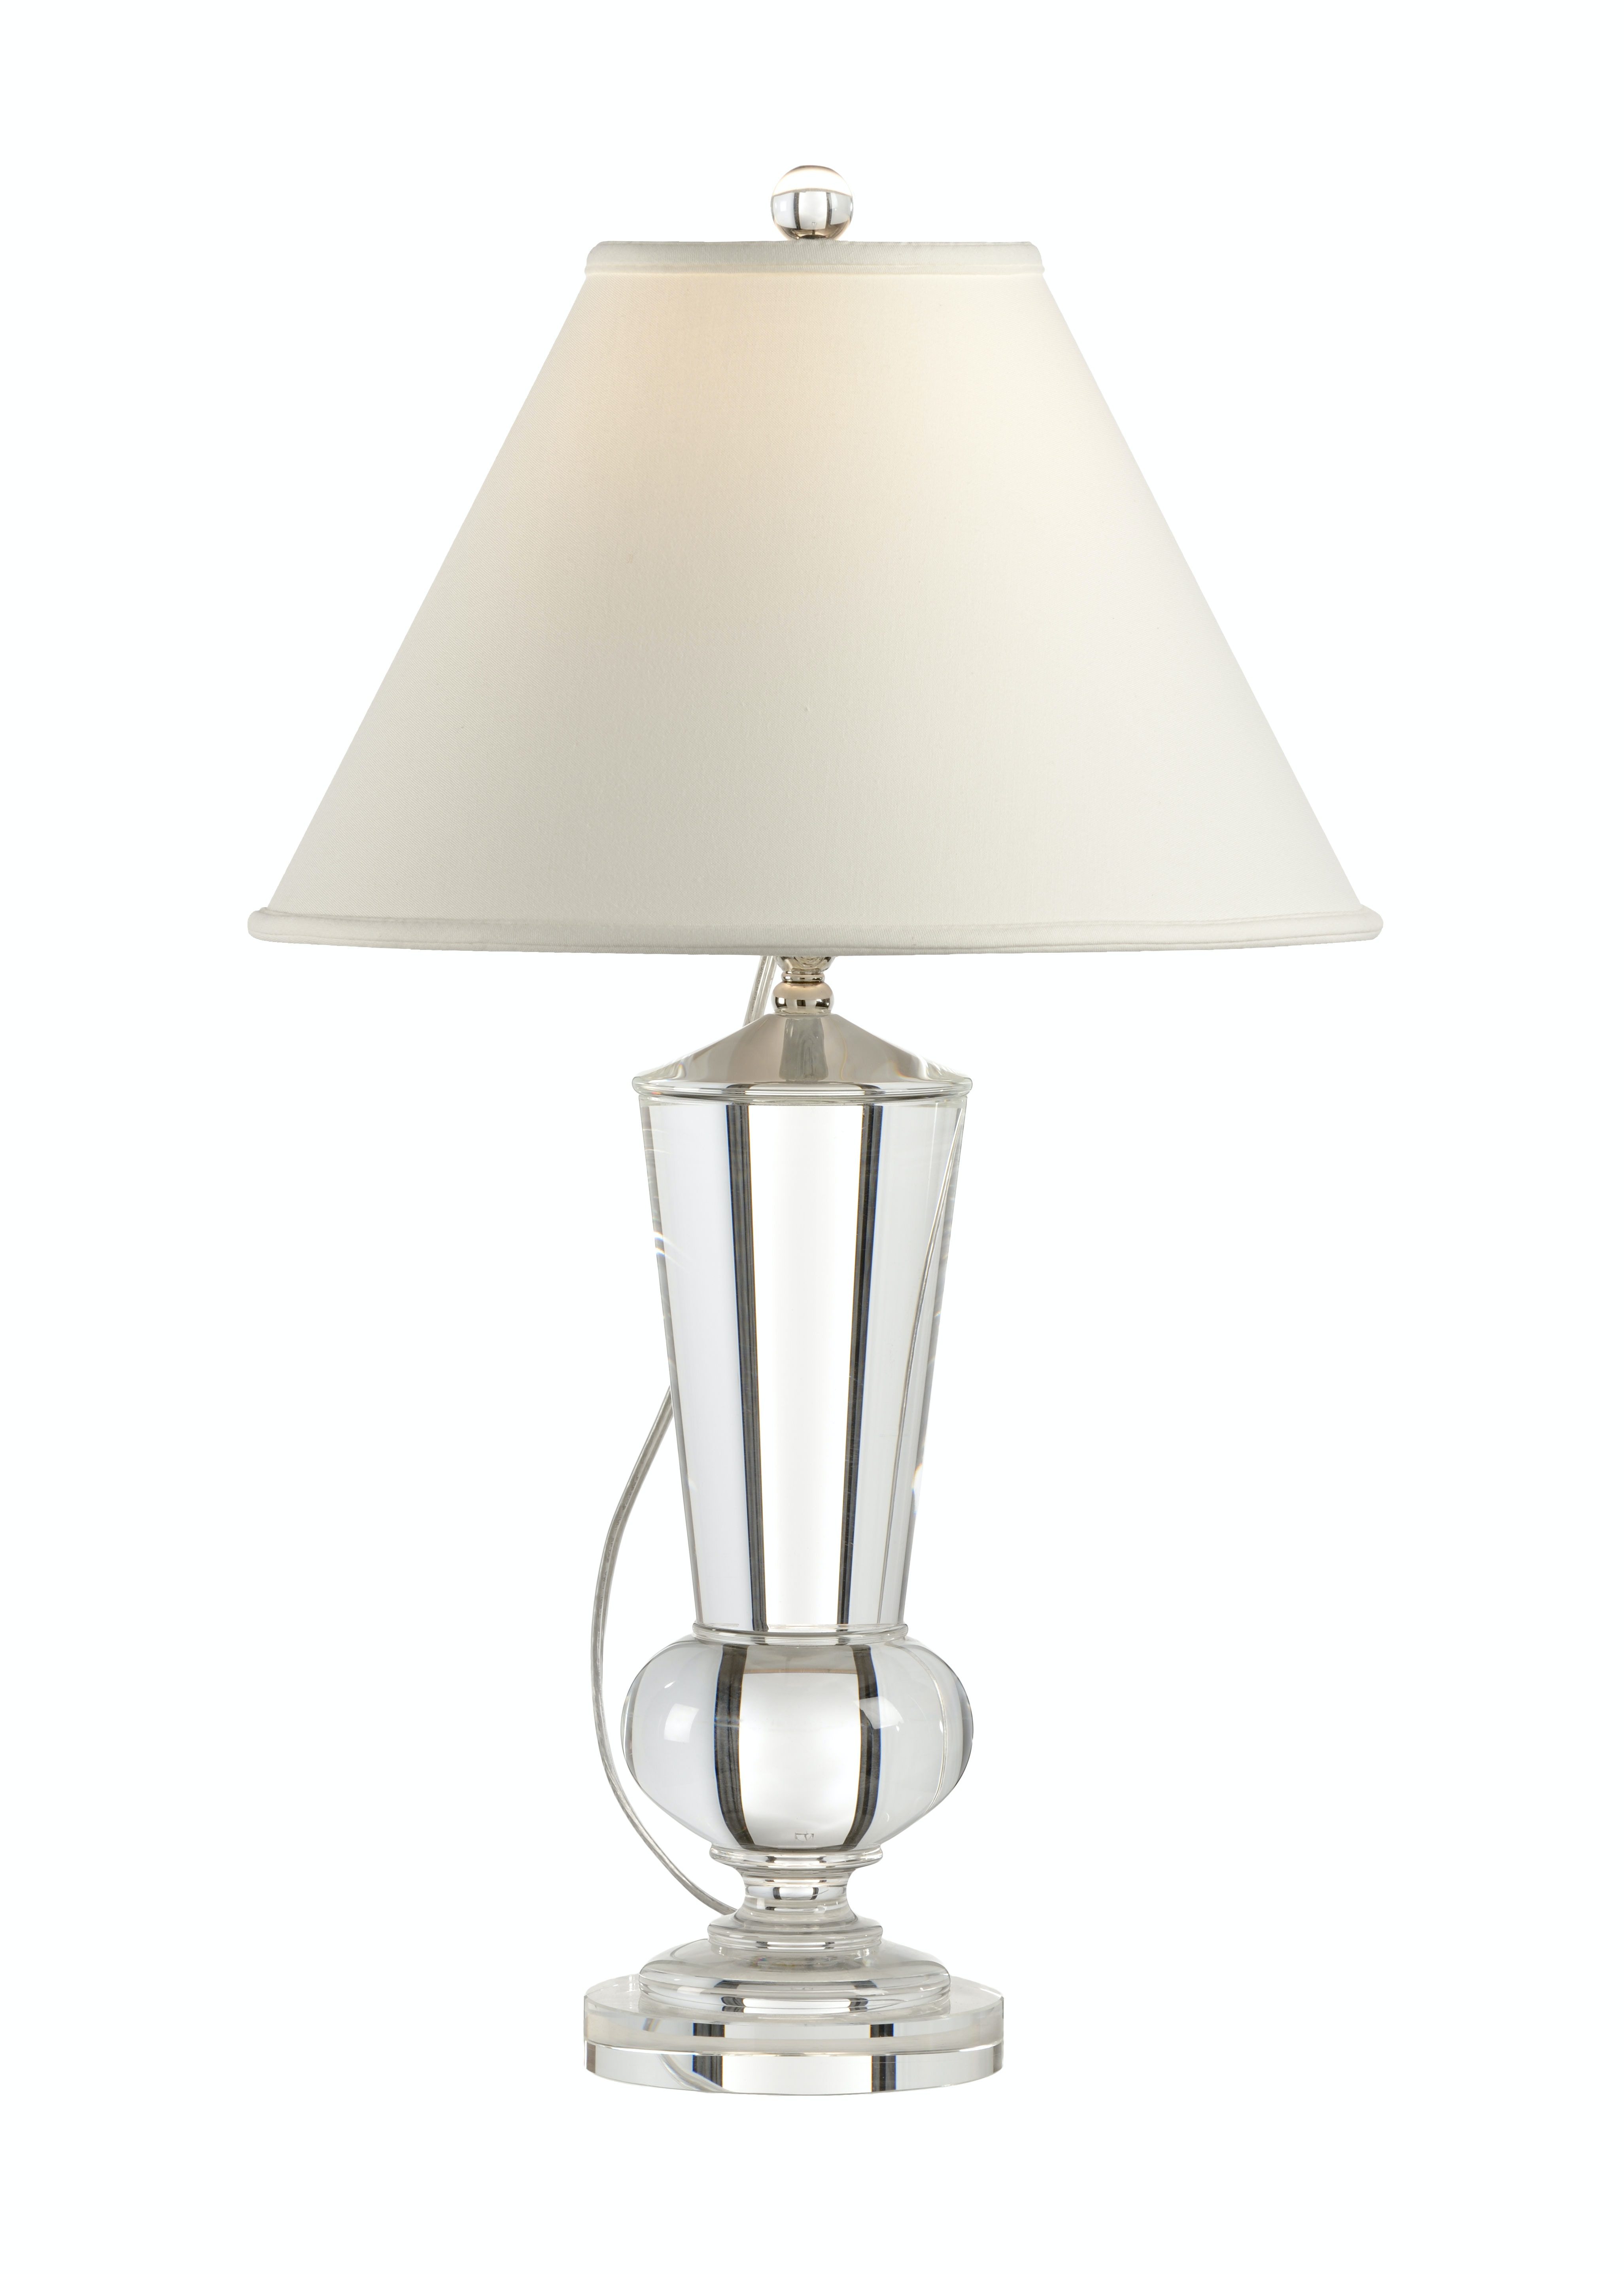 Well known Wildwood Lamps Furniture - Giorgi Brothers - South San Francisco, CA LN35